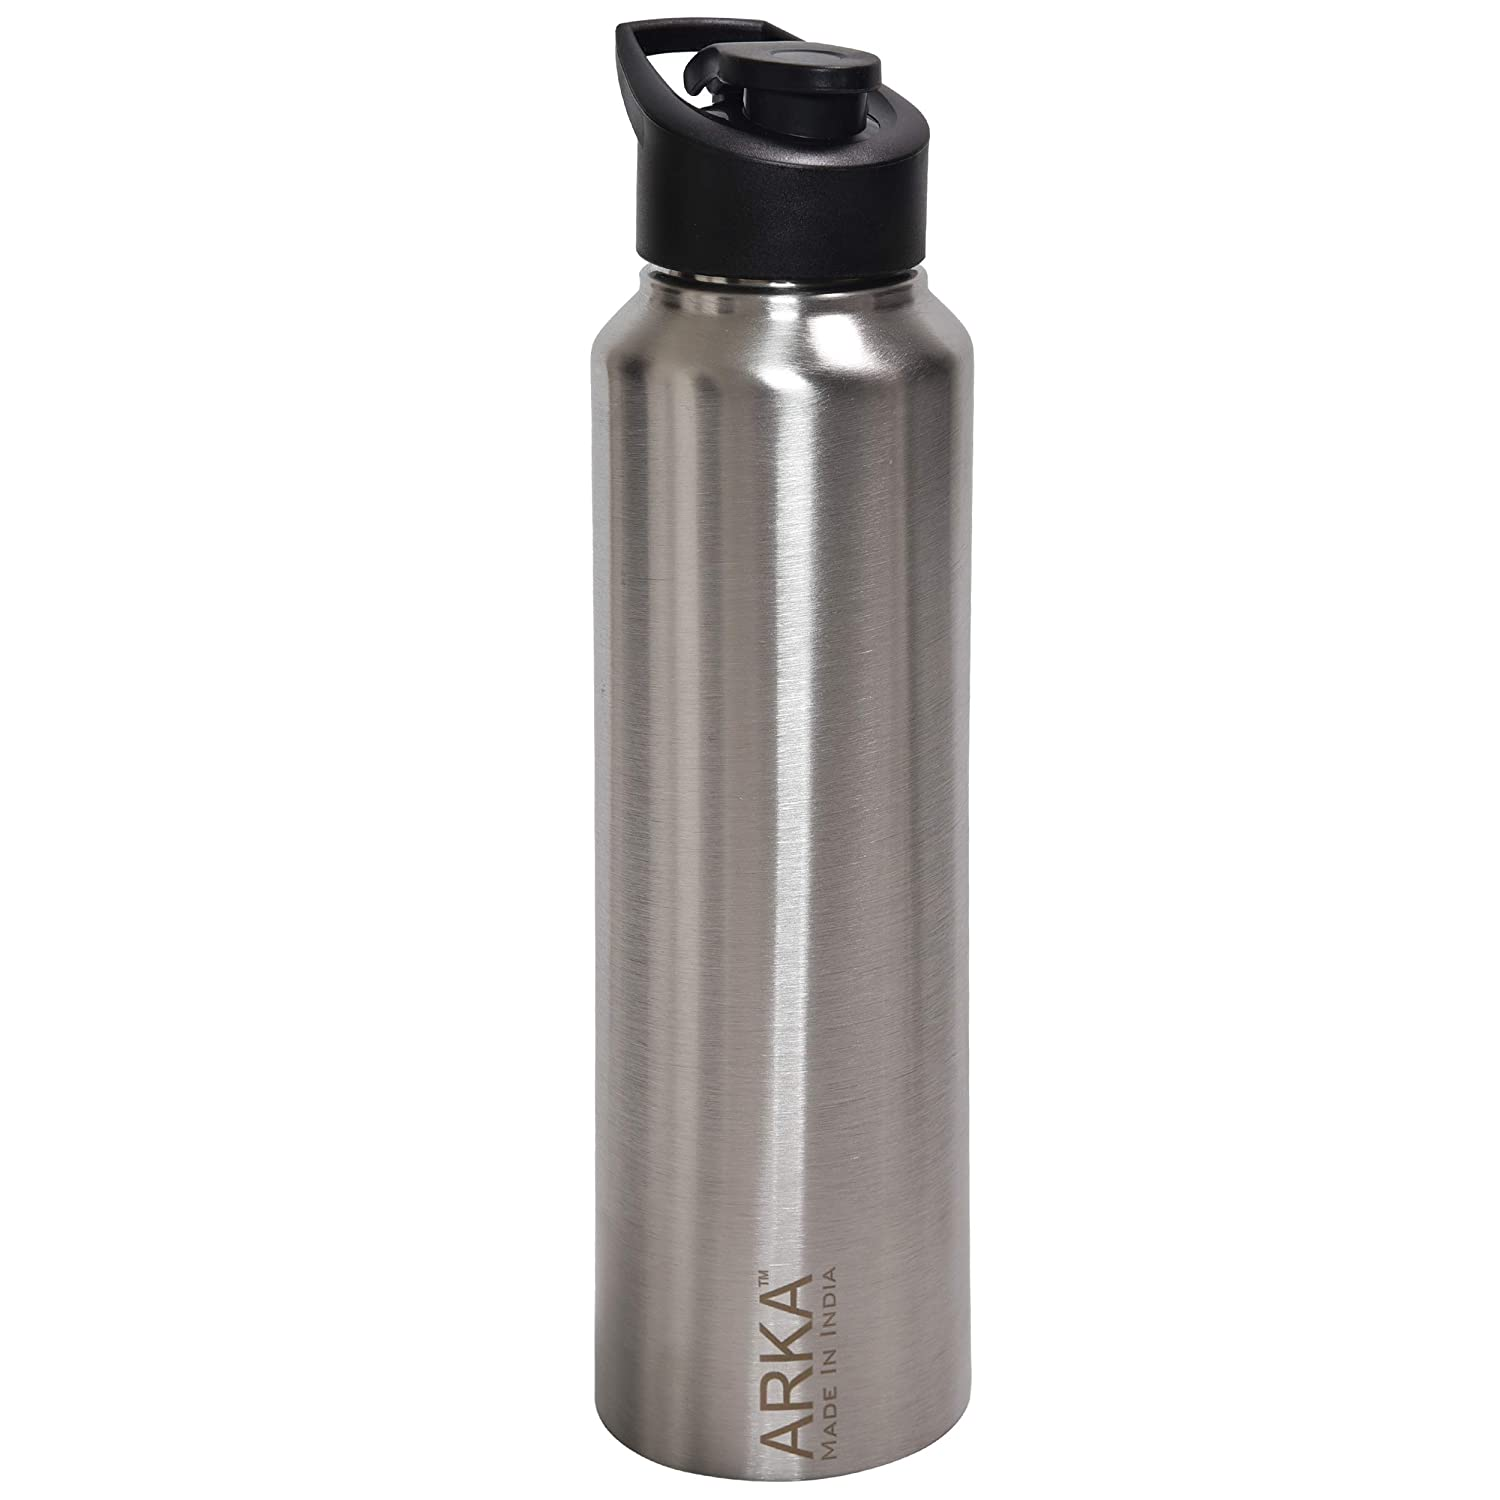 New ARKA Stainless Steel Chromo Water Bottle Thermos Crocodial 1000 ml Each New